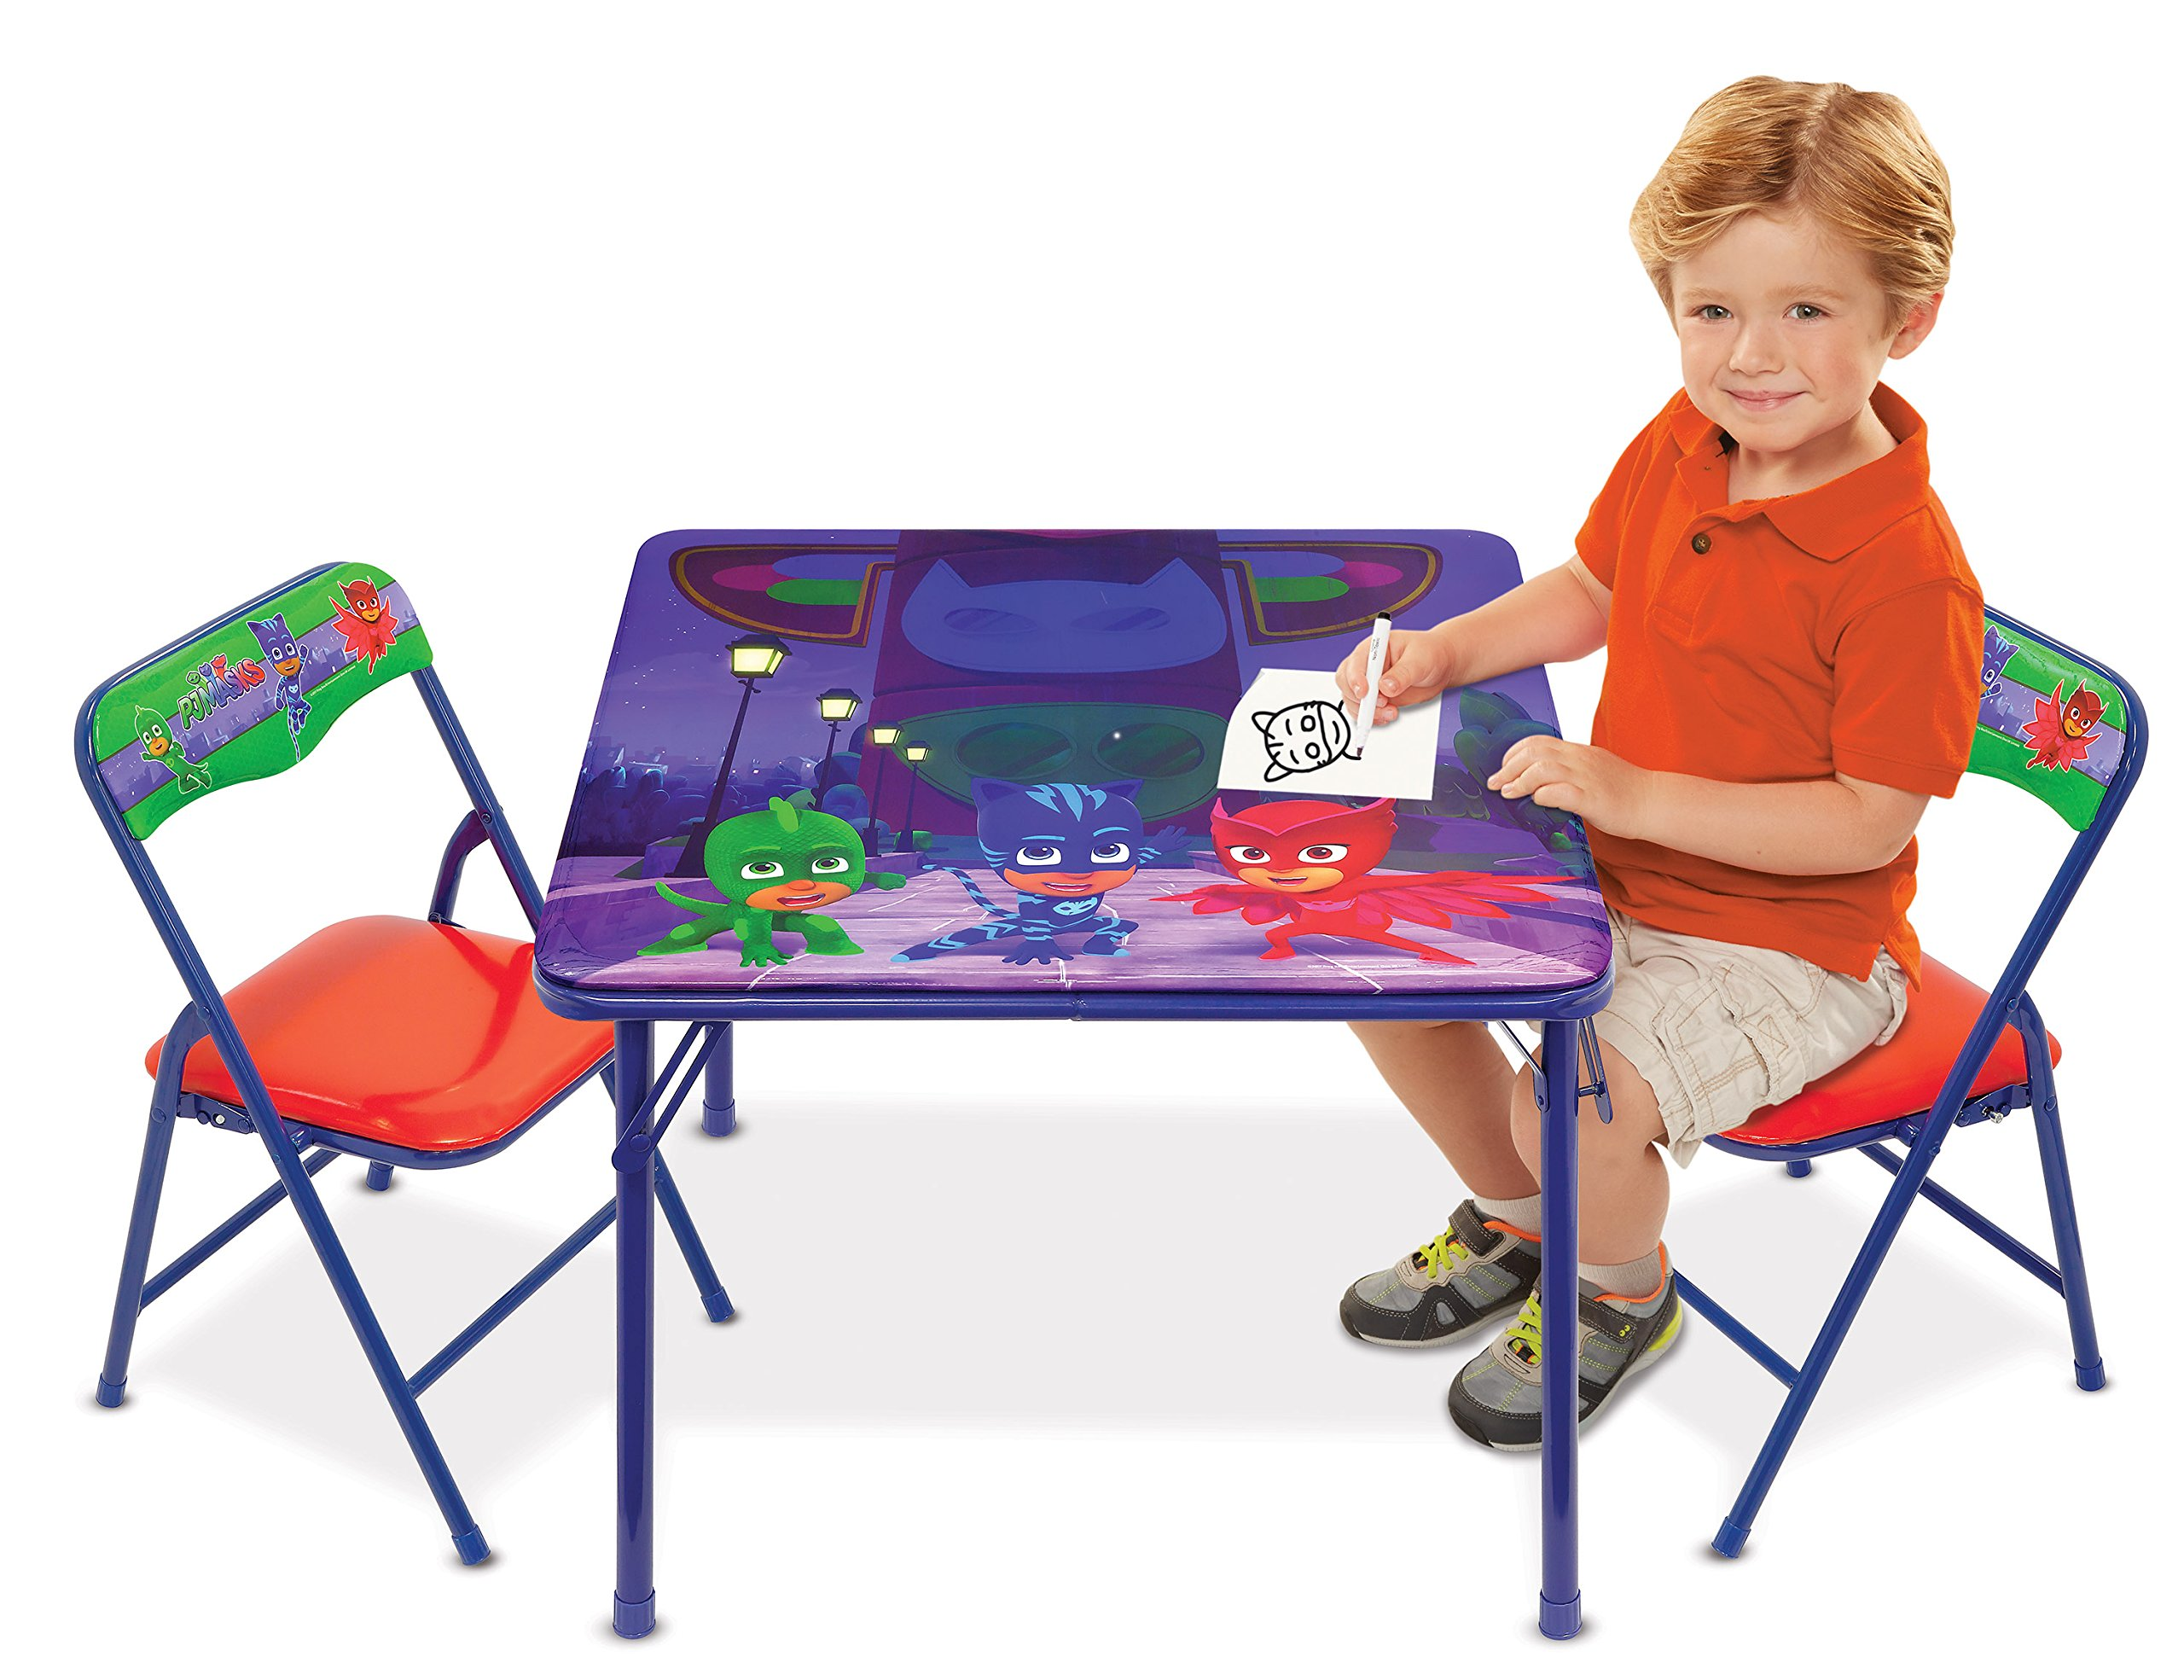 Disney PJ Masks Superhero Team Activity Table Set with 2 Chairs Play Set with Two Chairs by Disney